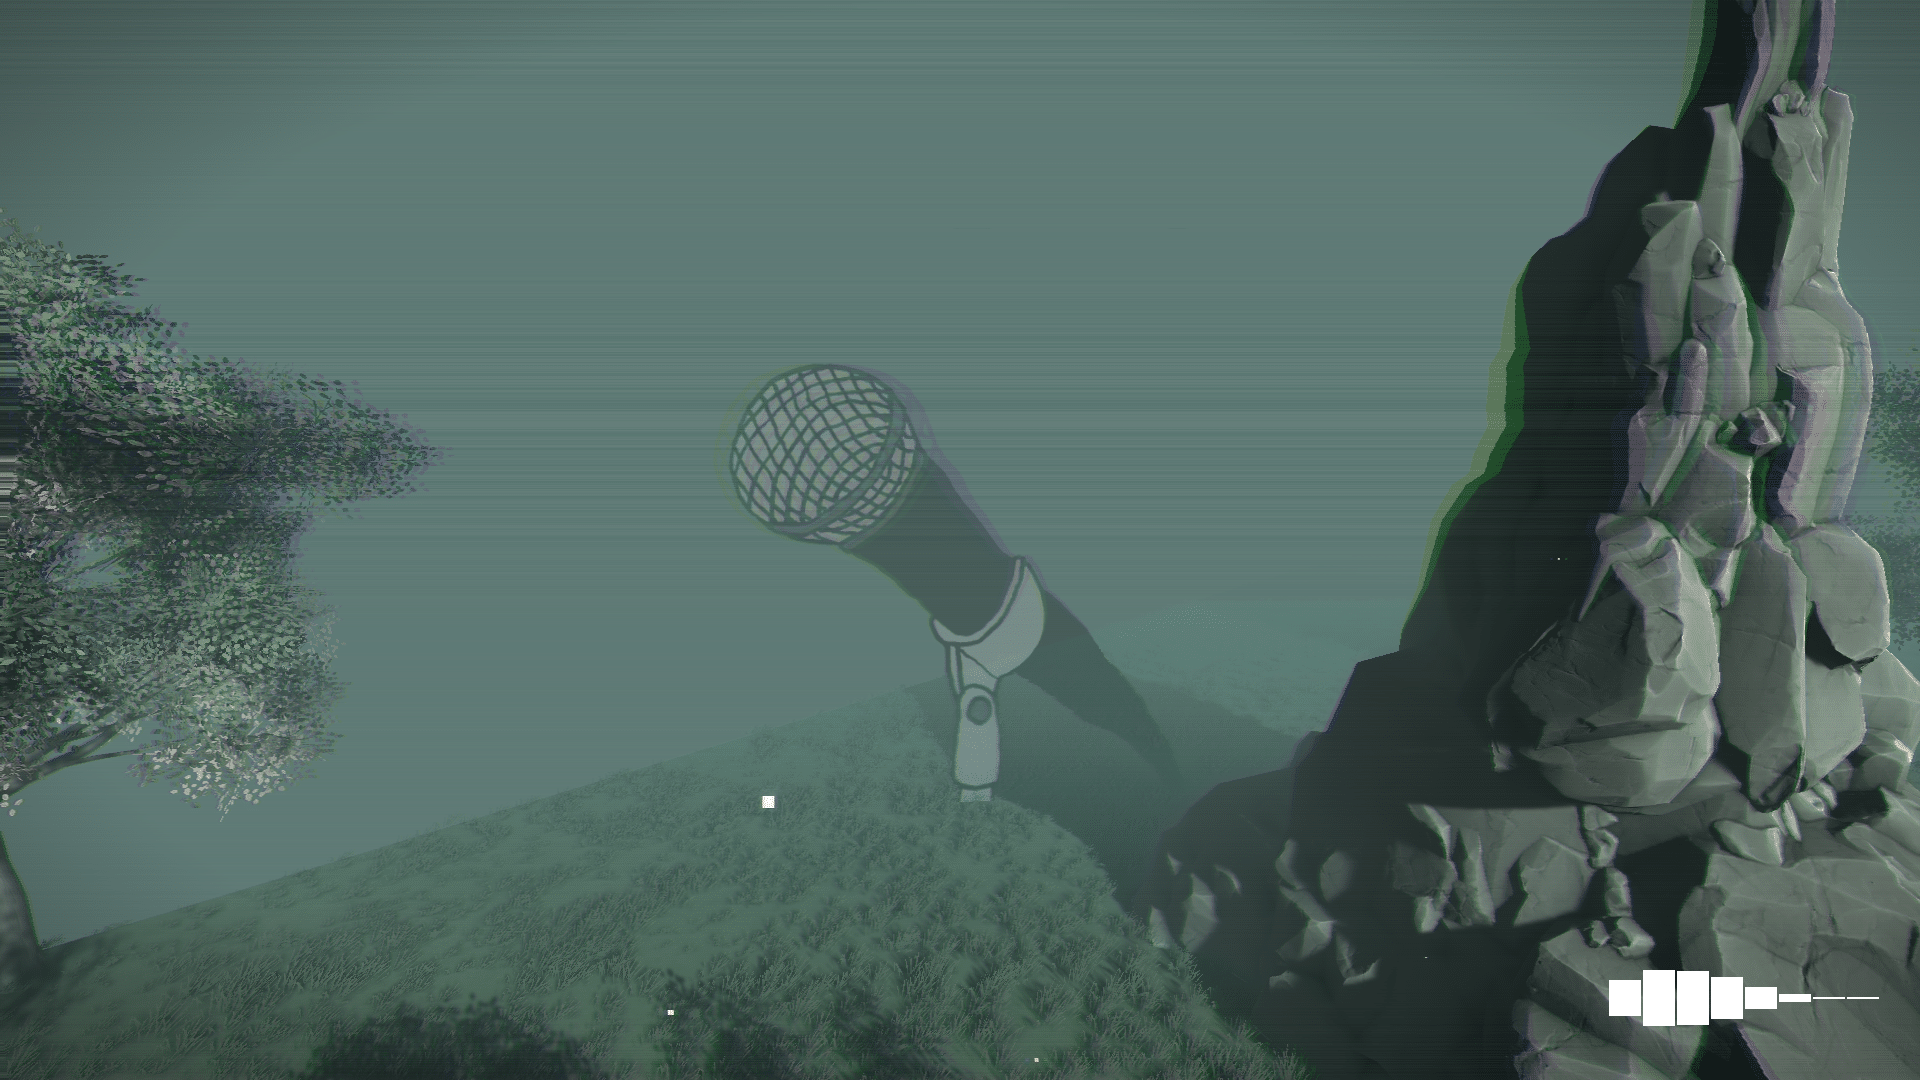 the media are plural logo sits among trees and rocks that are glitching out in a scene from the cyberpunk music visualization tool Metagroove